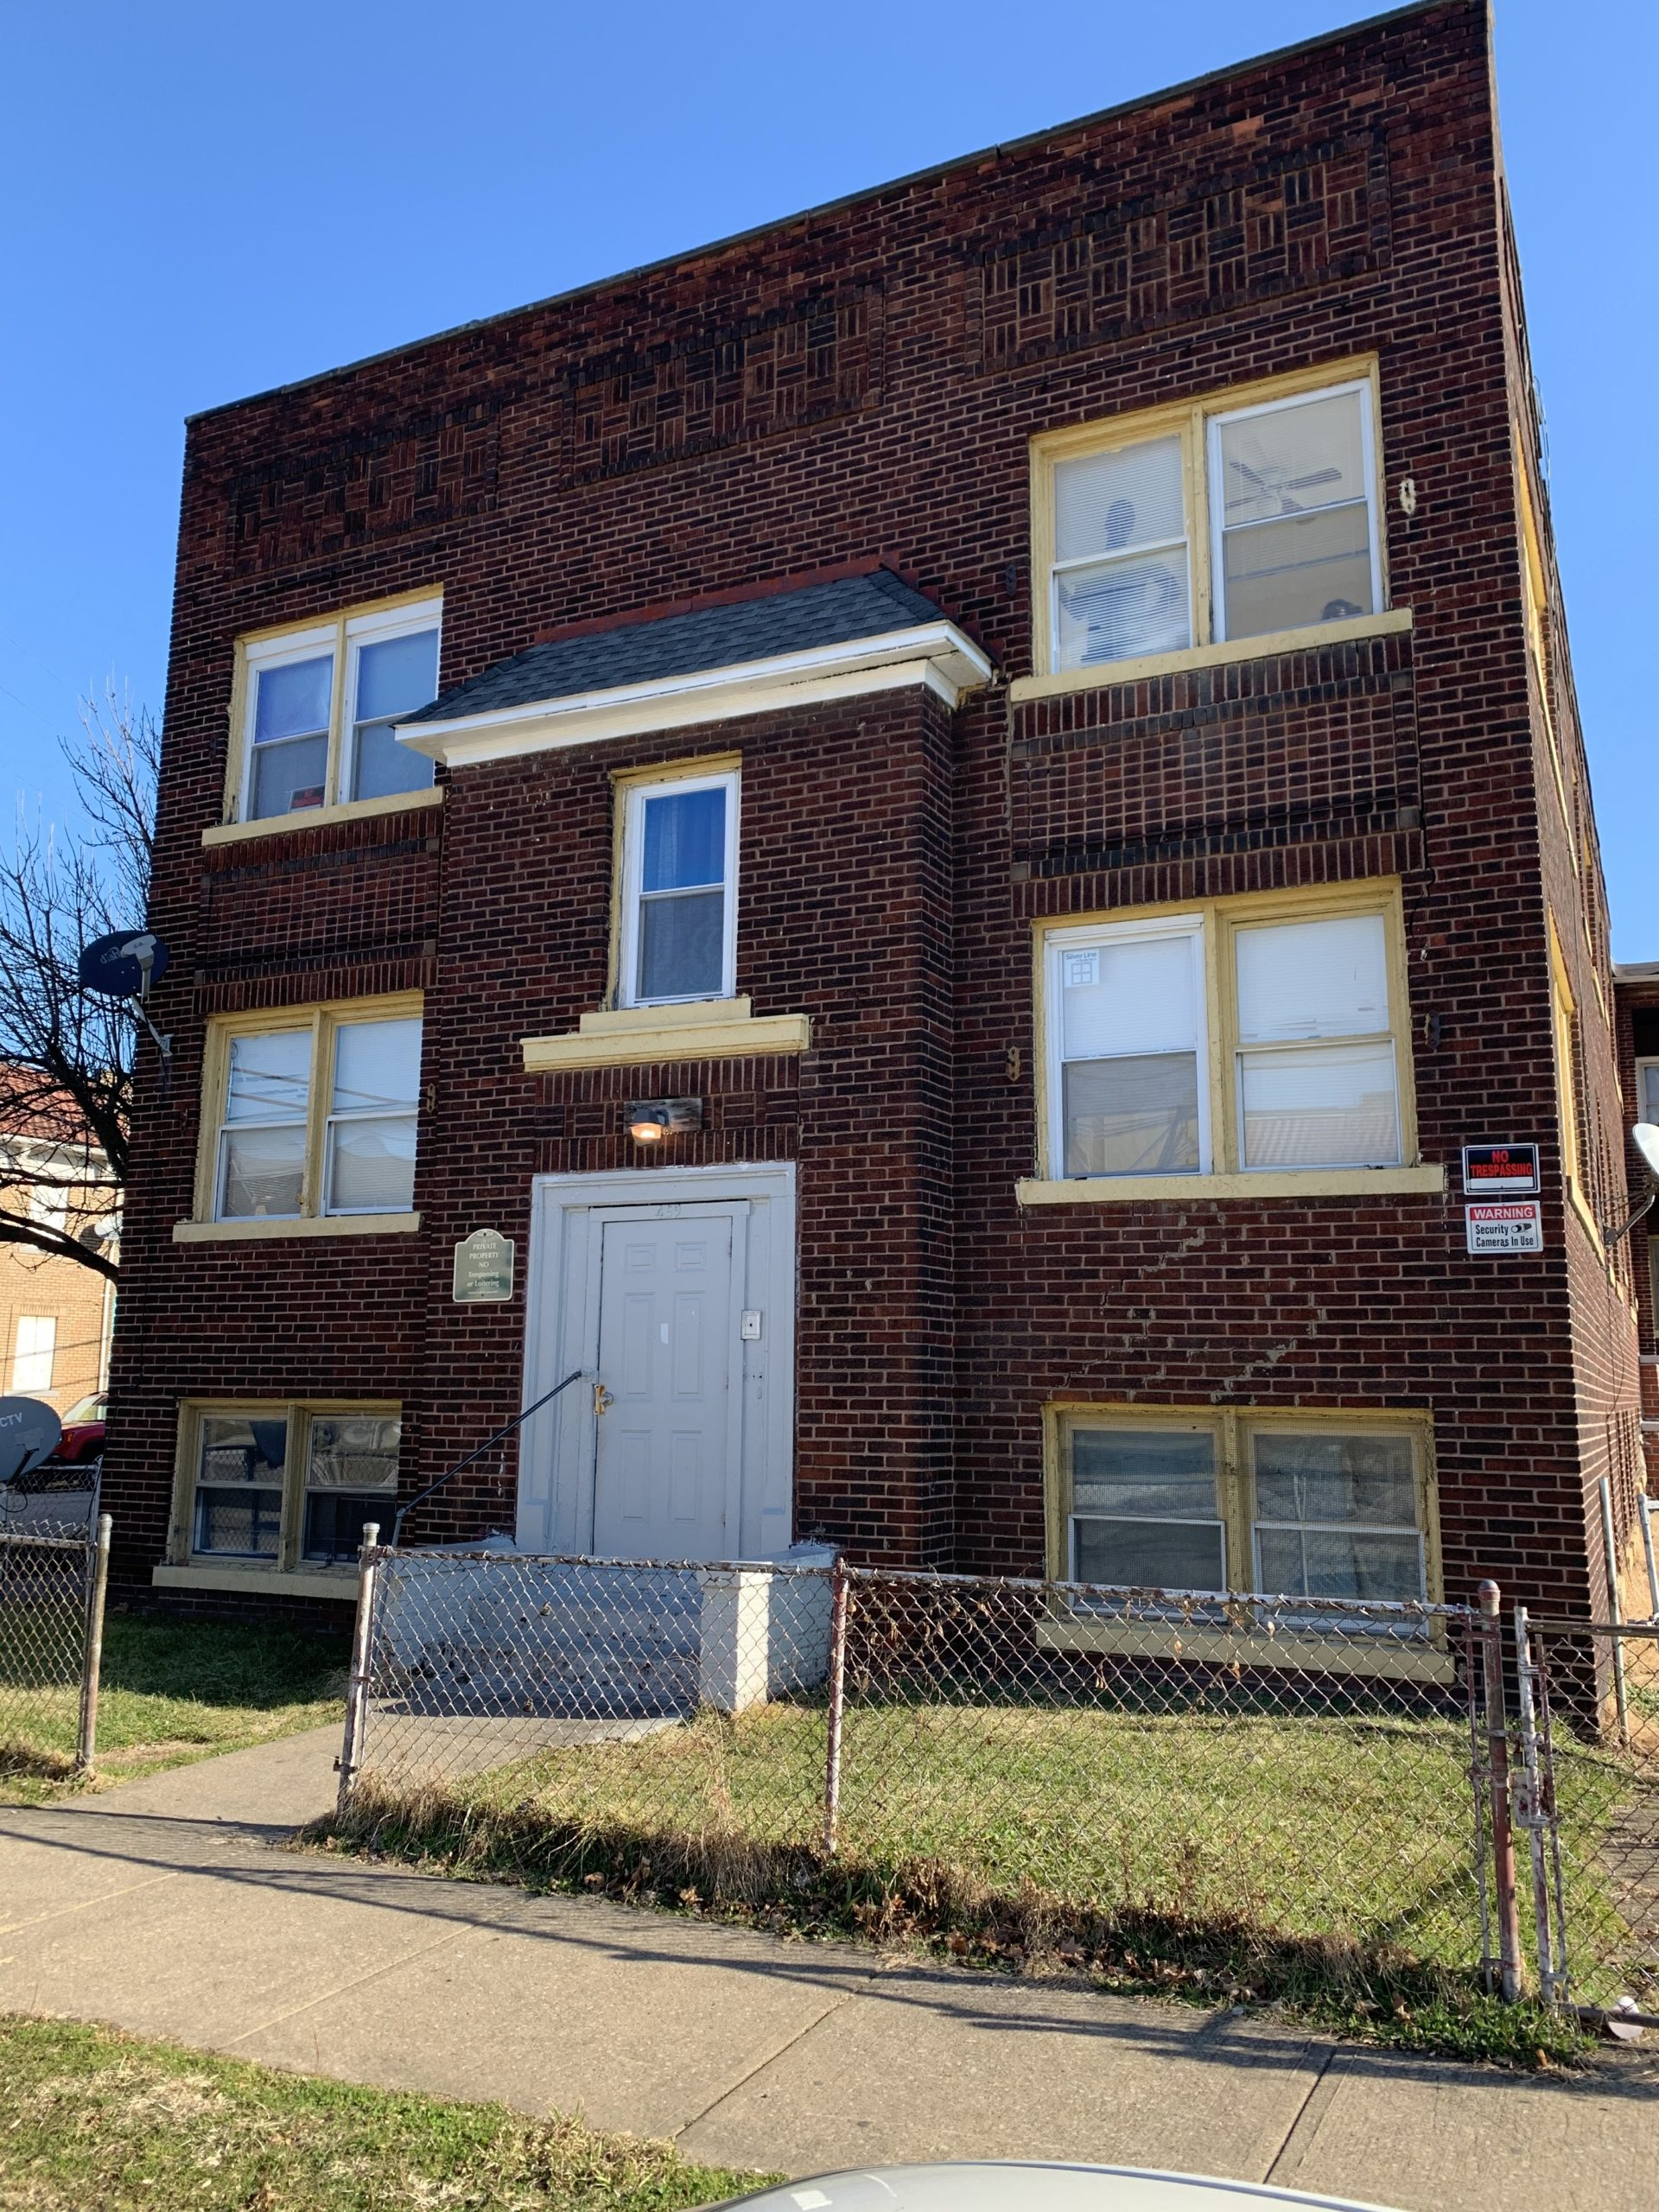 459 East 117th Street, OH 44108 – Unit1